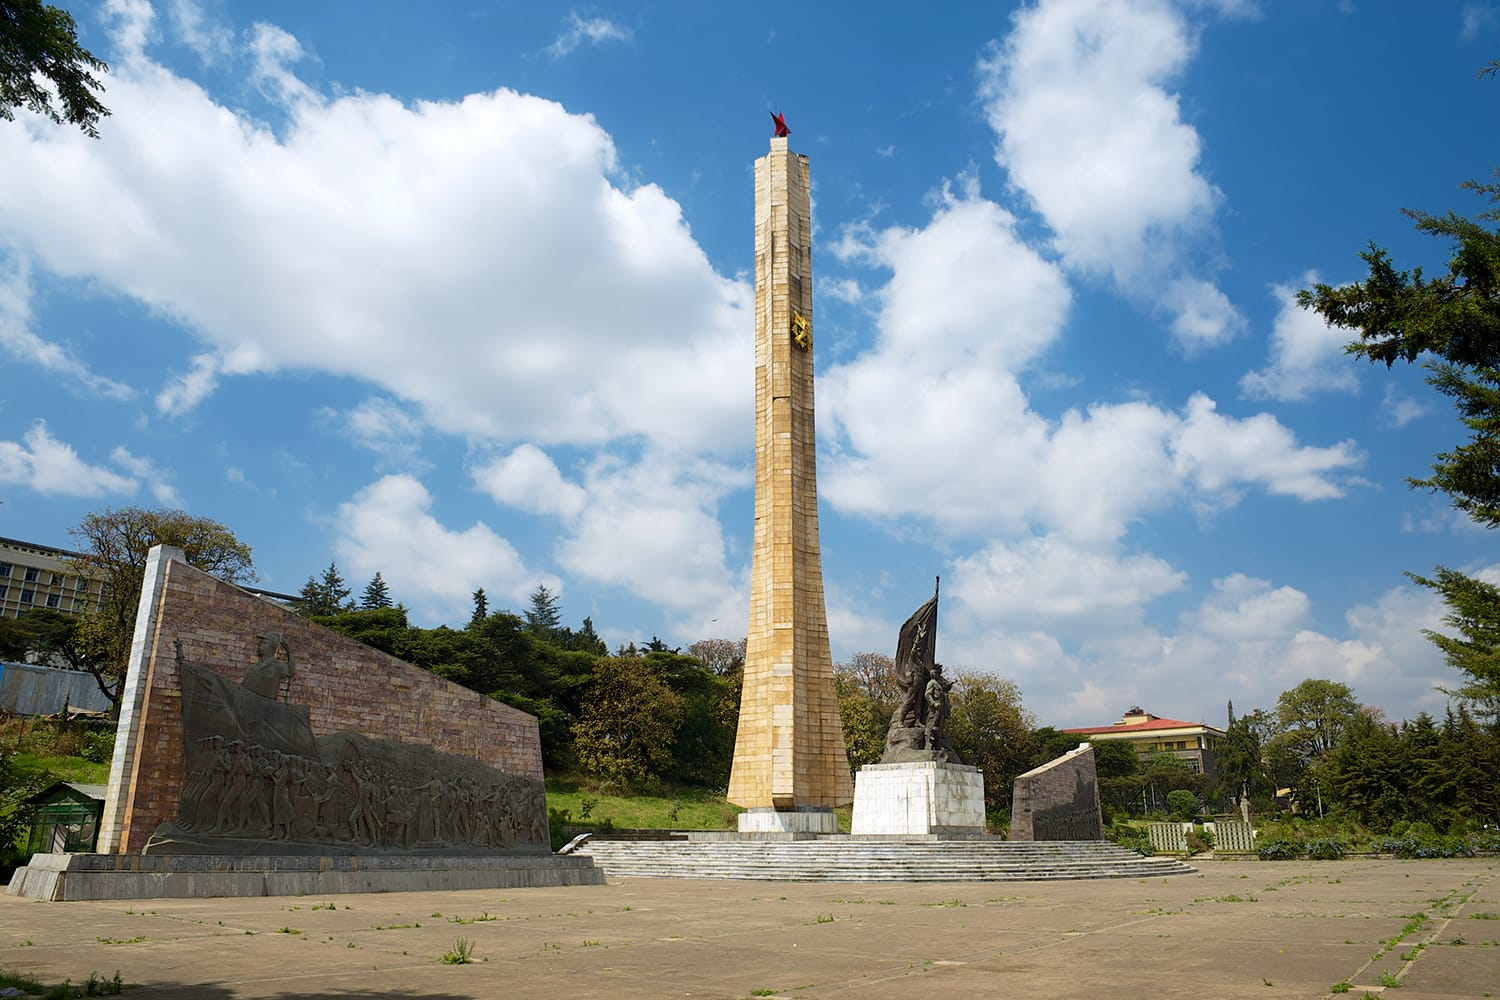 Tiglachin monument (or Derg memorial) for Soviet and Cuban soldiers involved in the Ogaden War in Addis Ababa, Ethiopia.